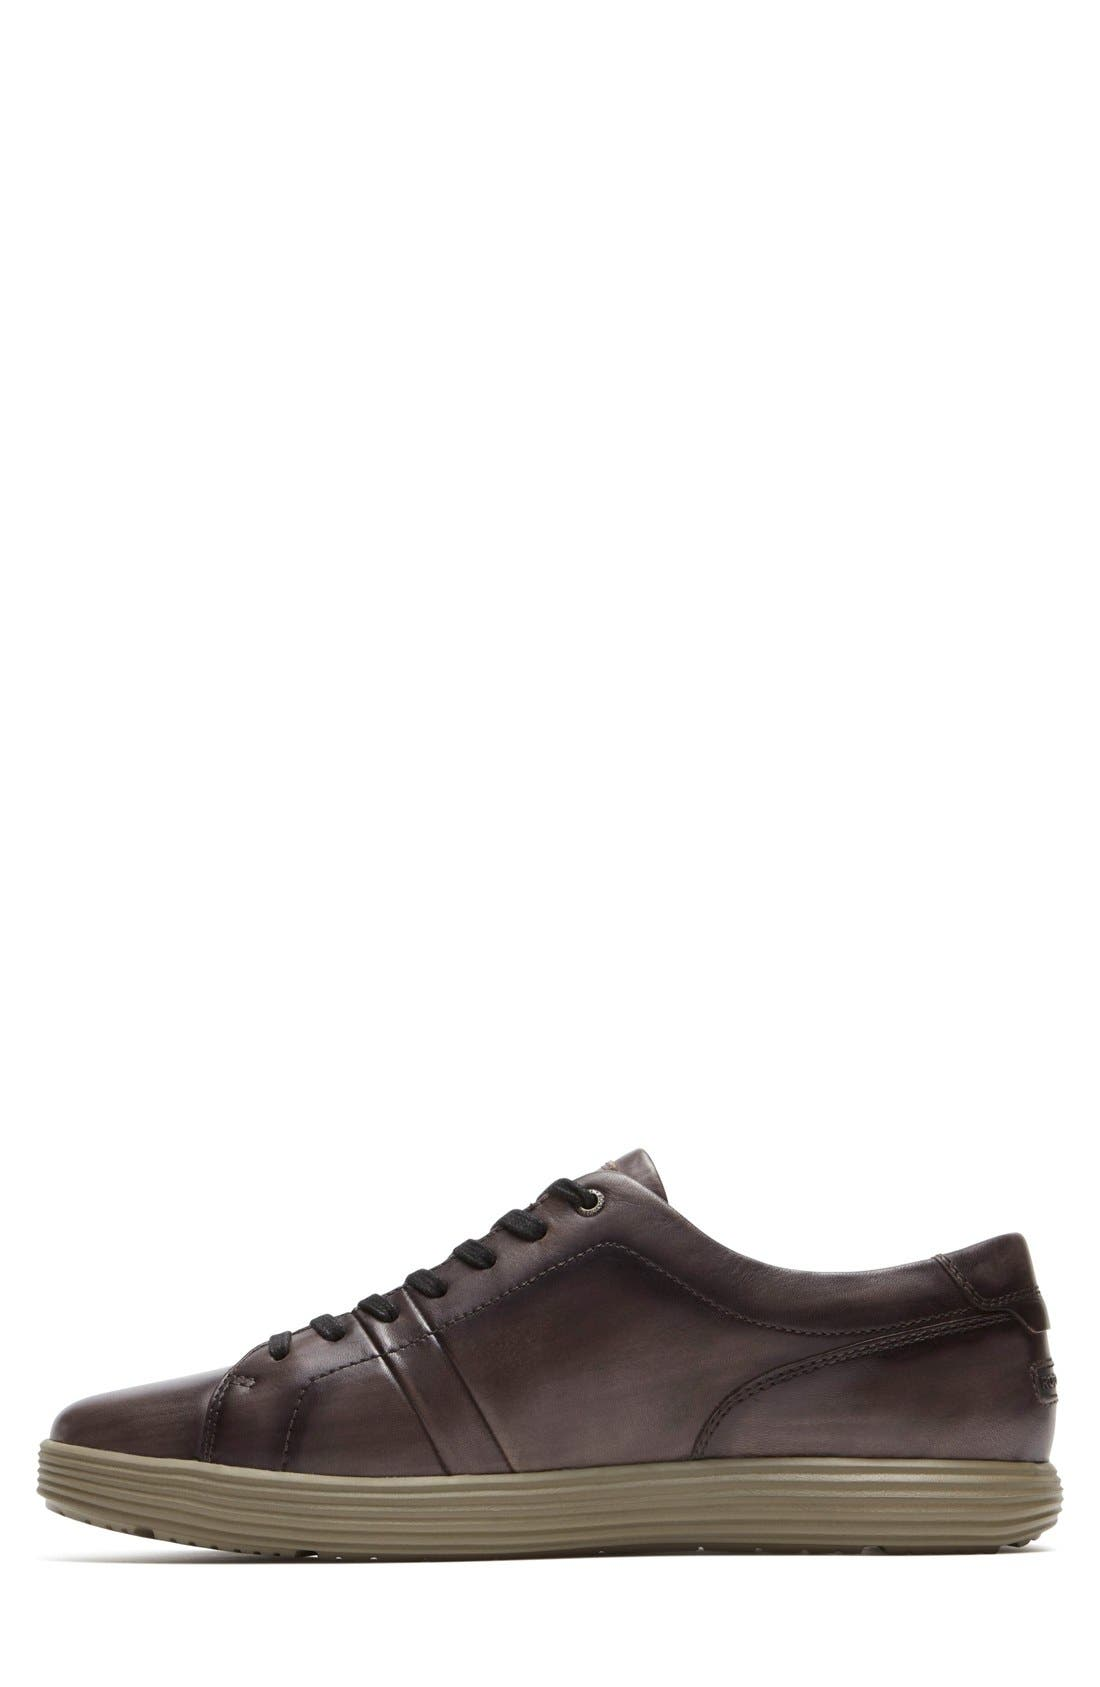 Thurston Sneaker,                             Alternate thumbnail 36, color,